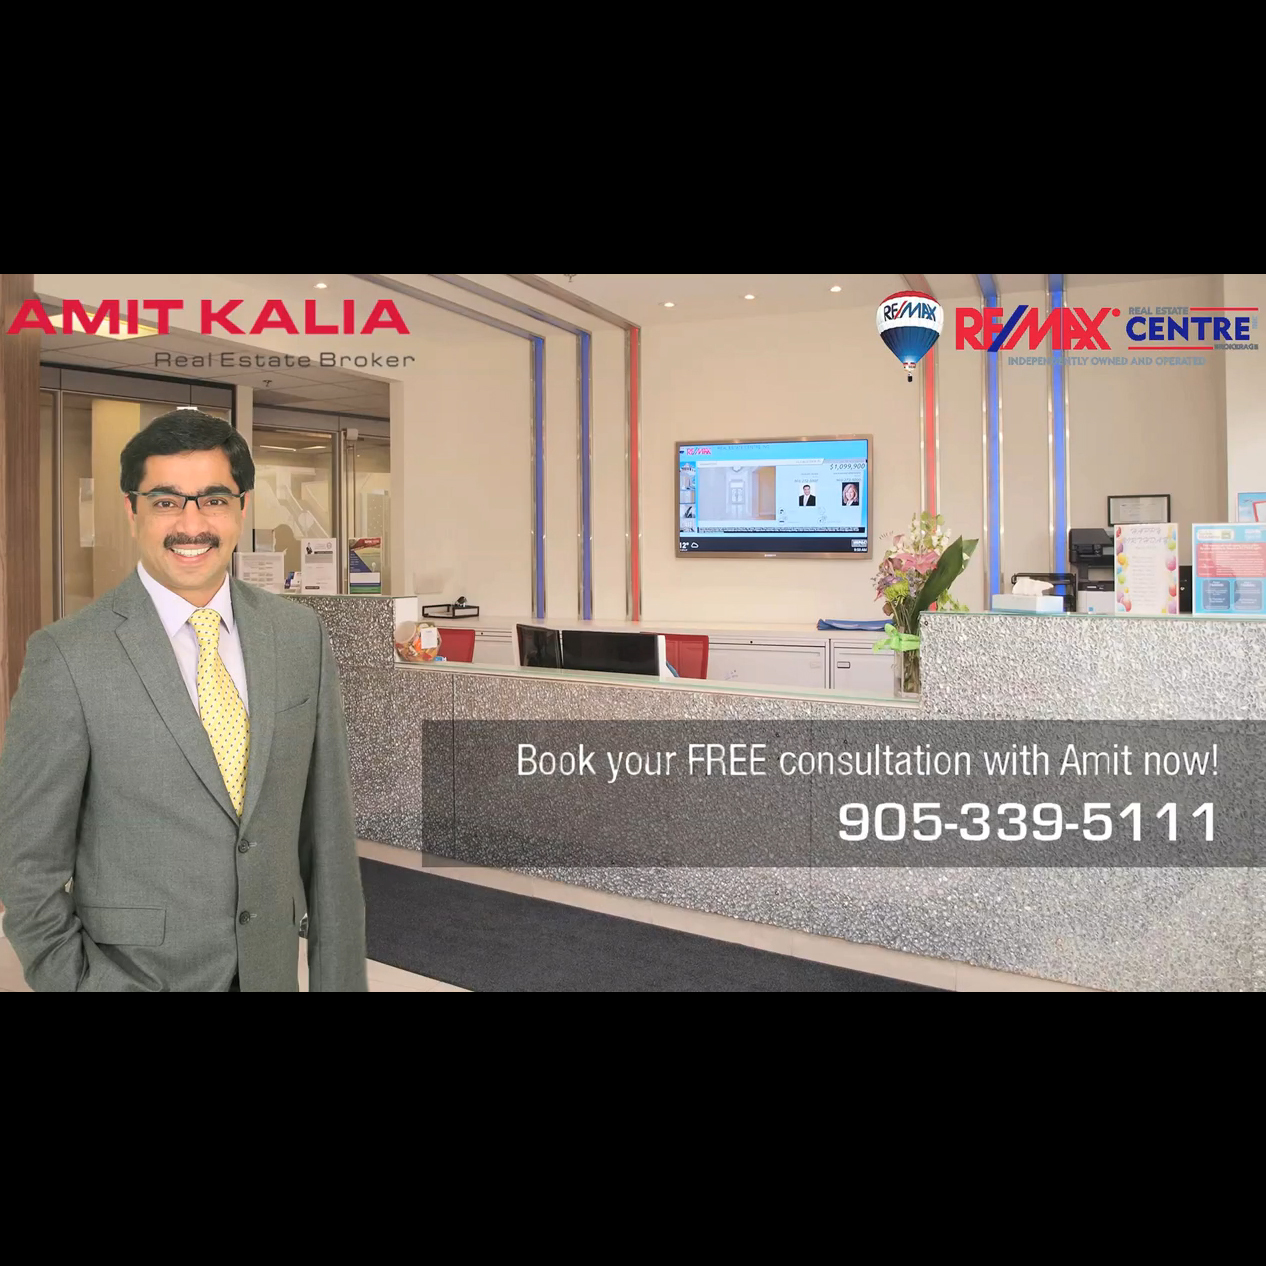 Amit Kalia Broker - Real Estate Brokers & Sales Representatives - 905-339-5111